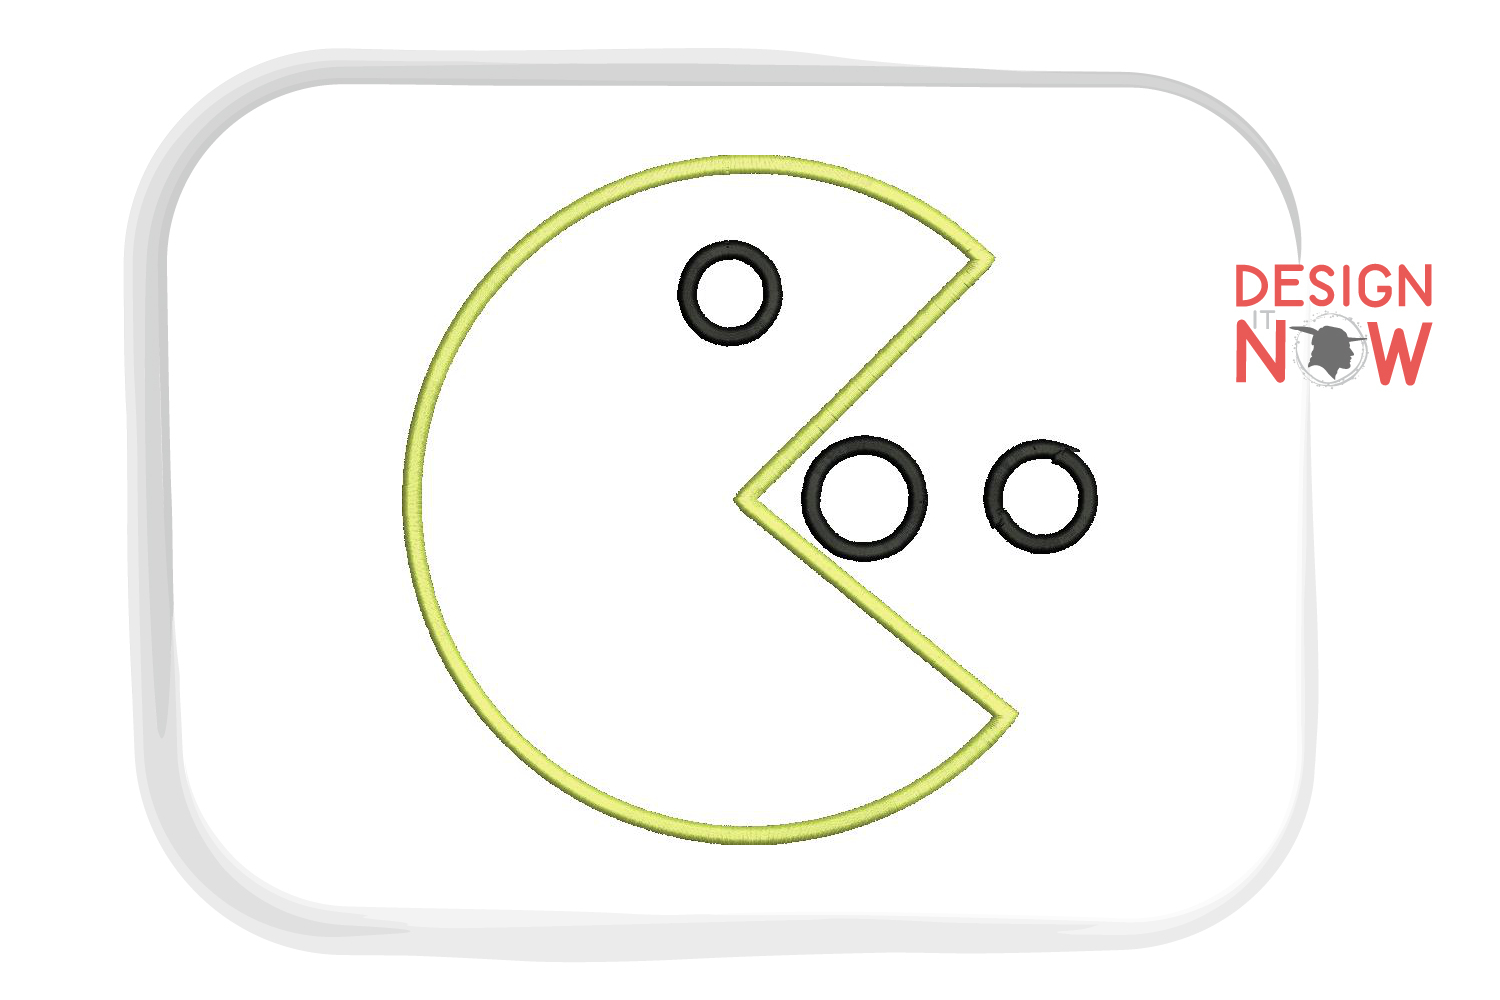 Packman Game Applique Design, Packman Embroidery Pattern example image 1